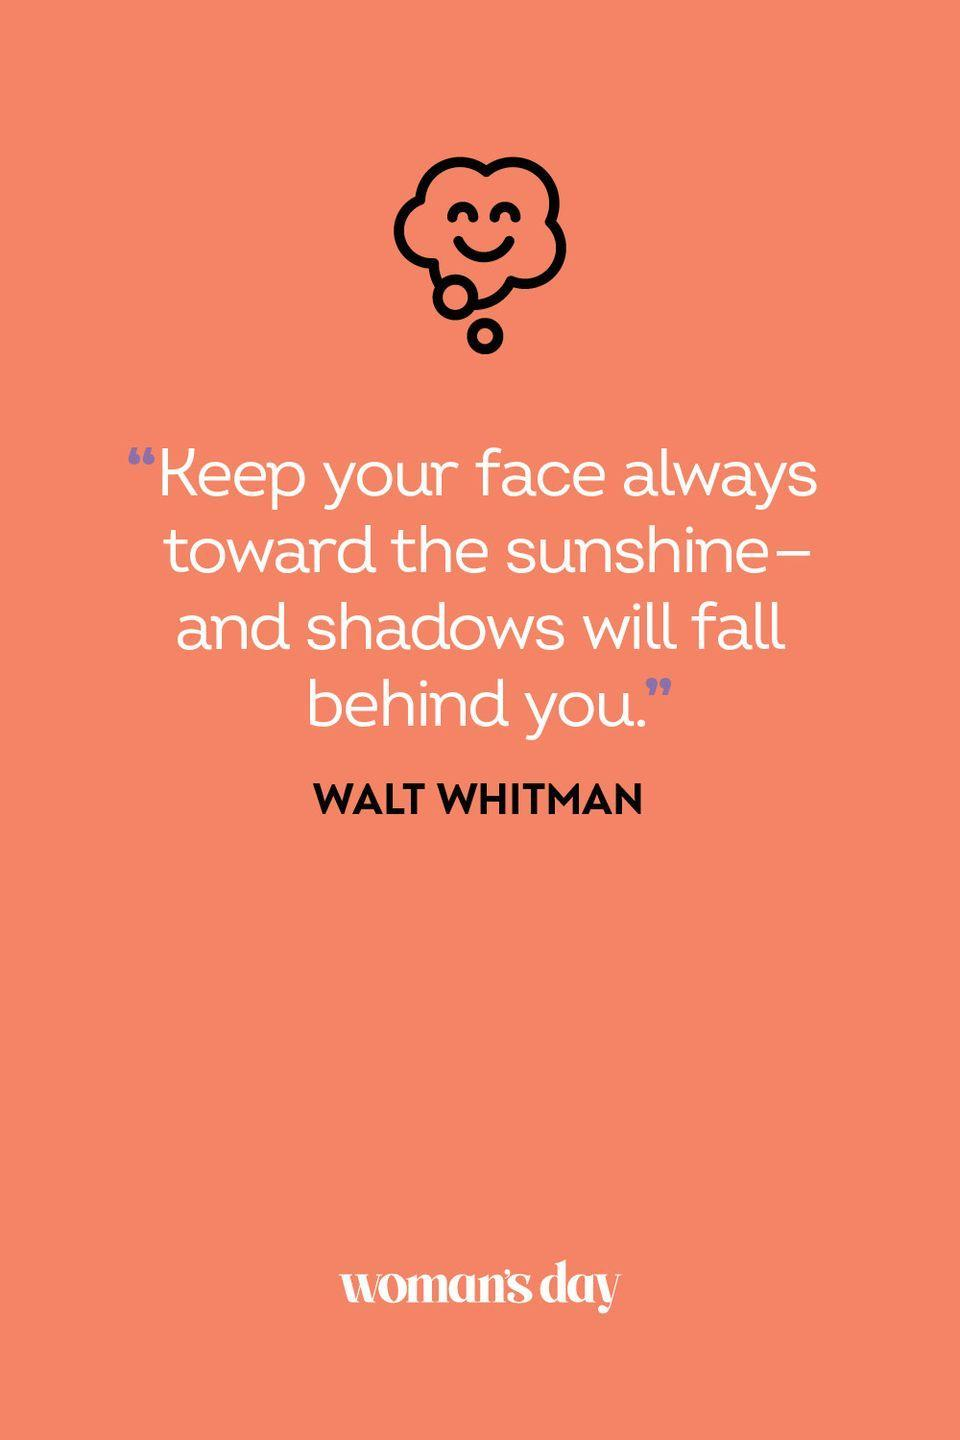 <p>Keep your face always toward the sunshine—and shadows will fall behind you.</p>